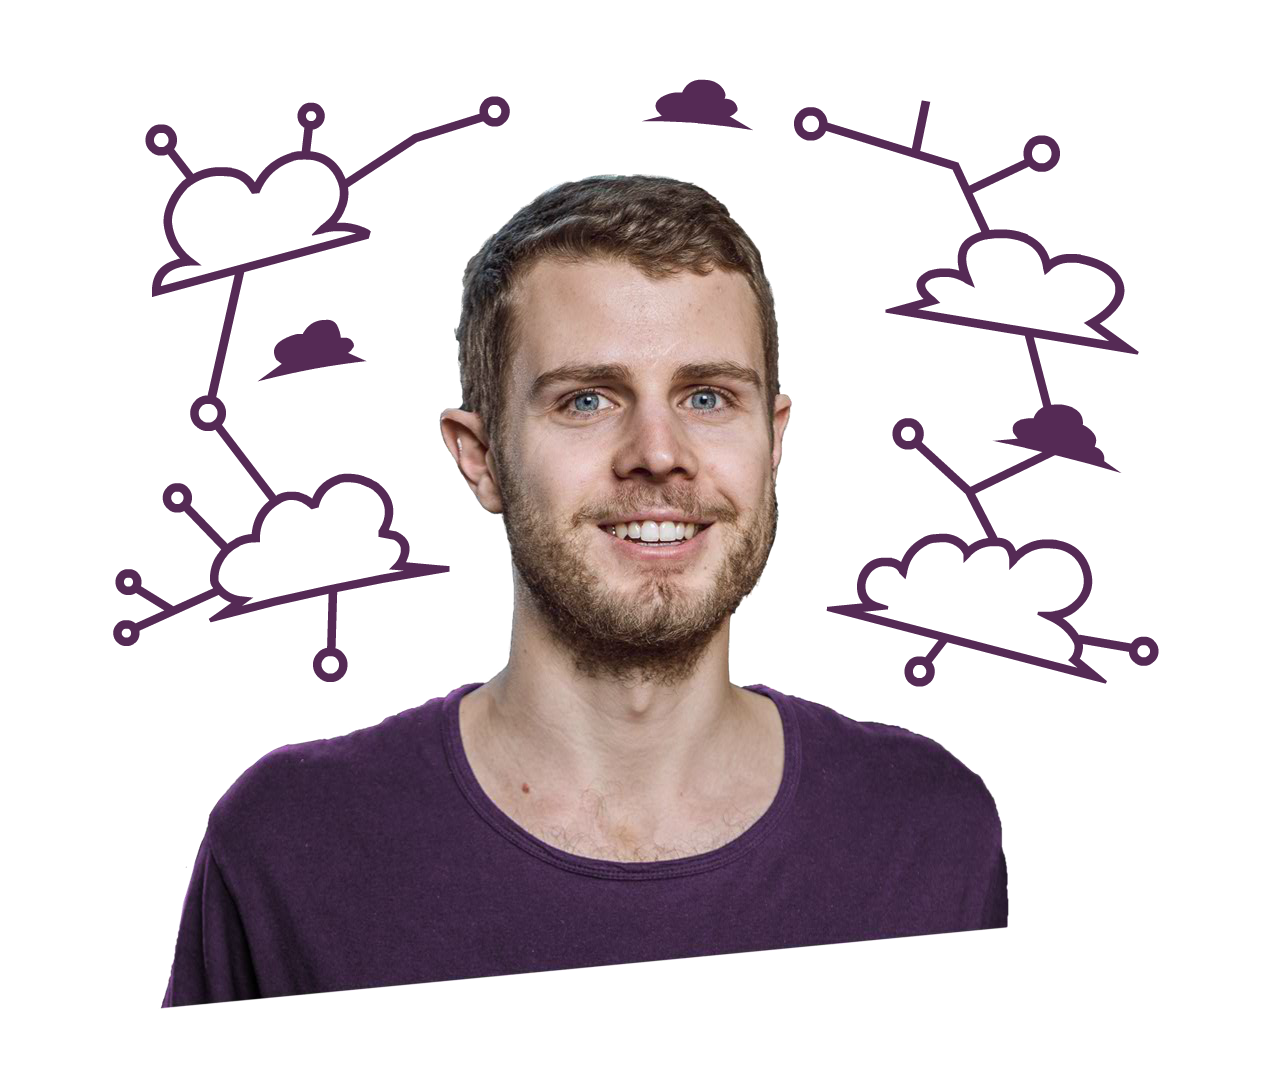 Hadle Selsås is Boost AI's co-founder and Lars Selsås' brother